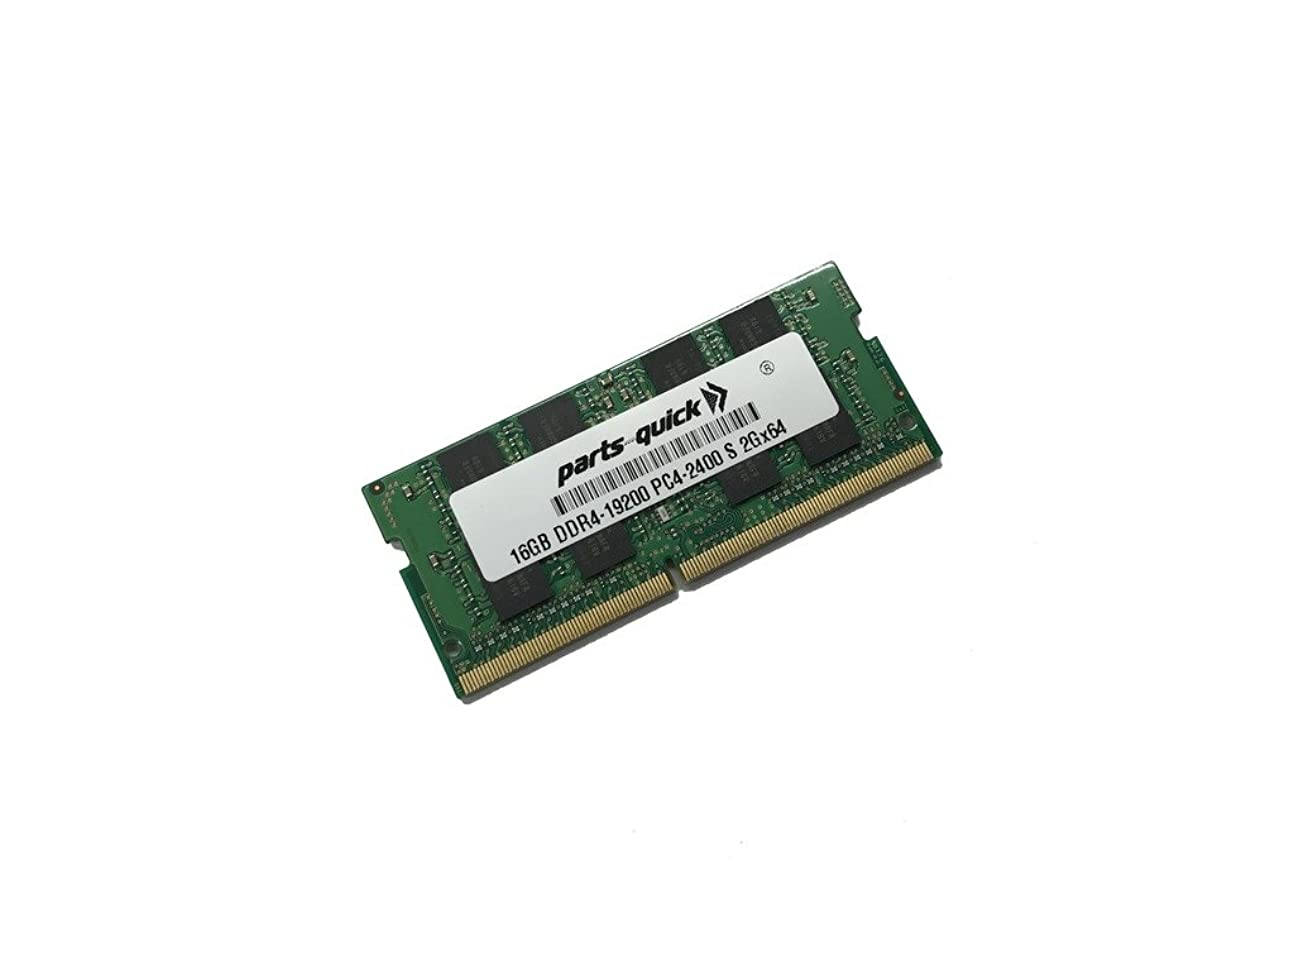 ペリスコープ散髪鯨16GB (1X16GB) メモリー HP Notebook 17-bs051od DDR4-2400 SODIMM RAM (PARTS-QUICKブランド)